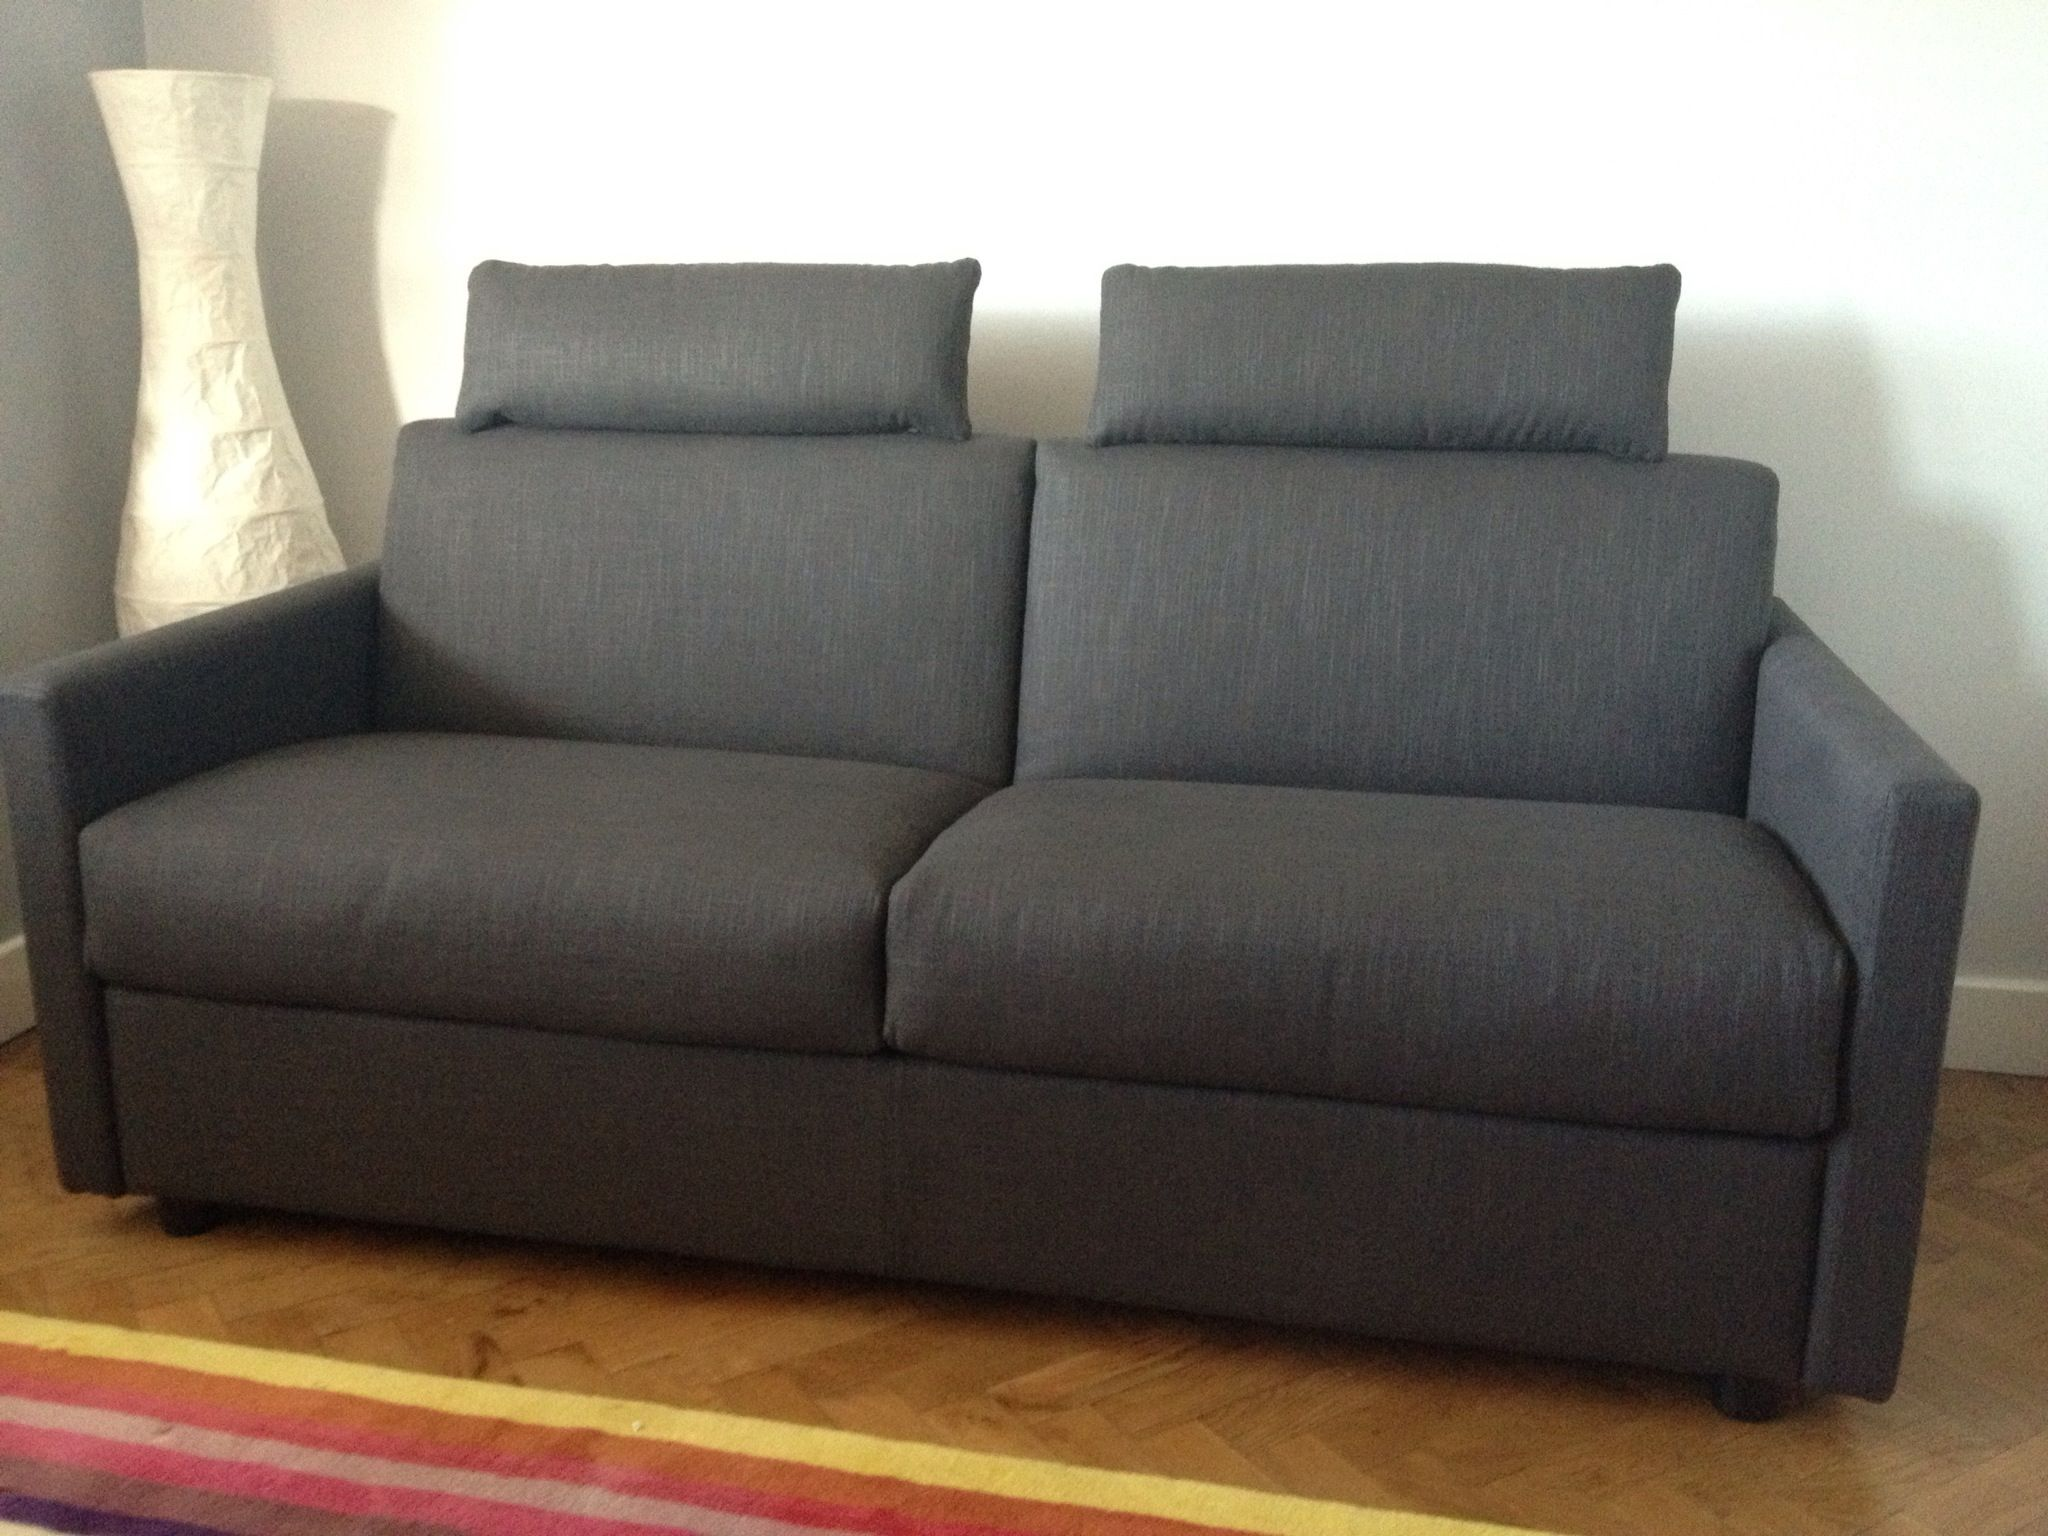 Lario 2 5 Seat Sofa Bed With 8 Cm Slim Arms And Headrests